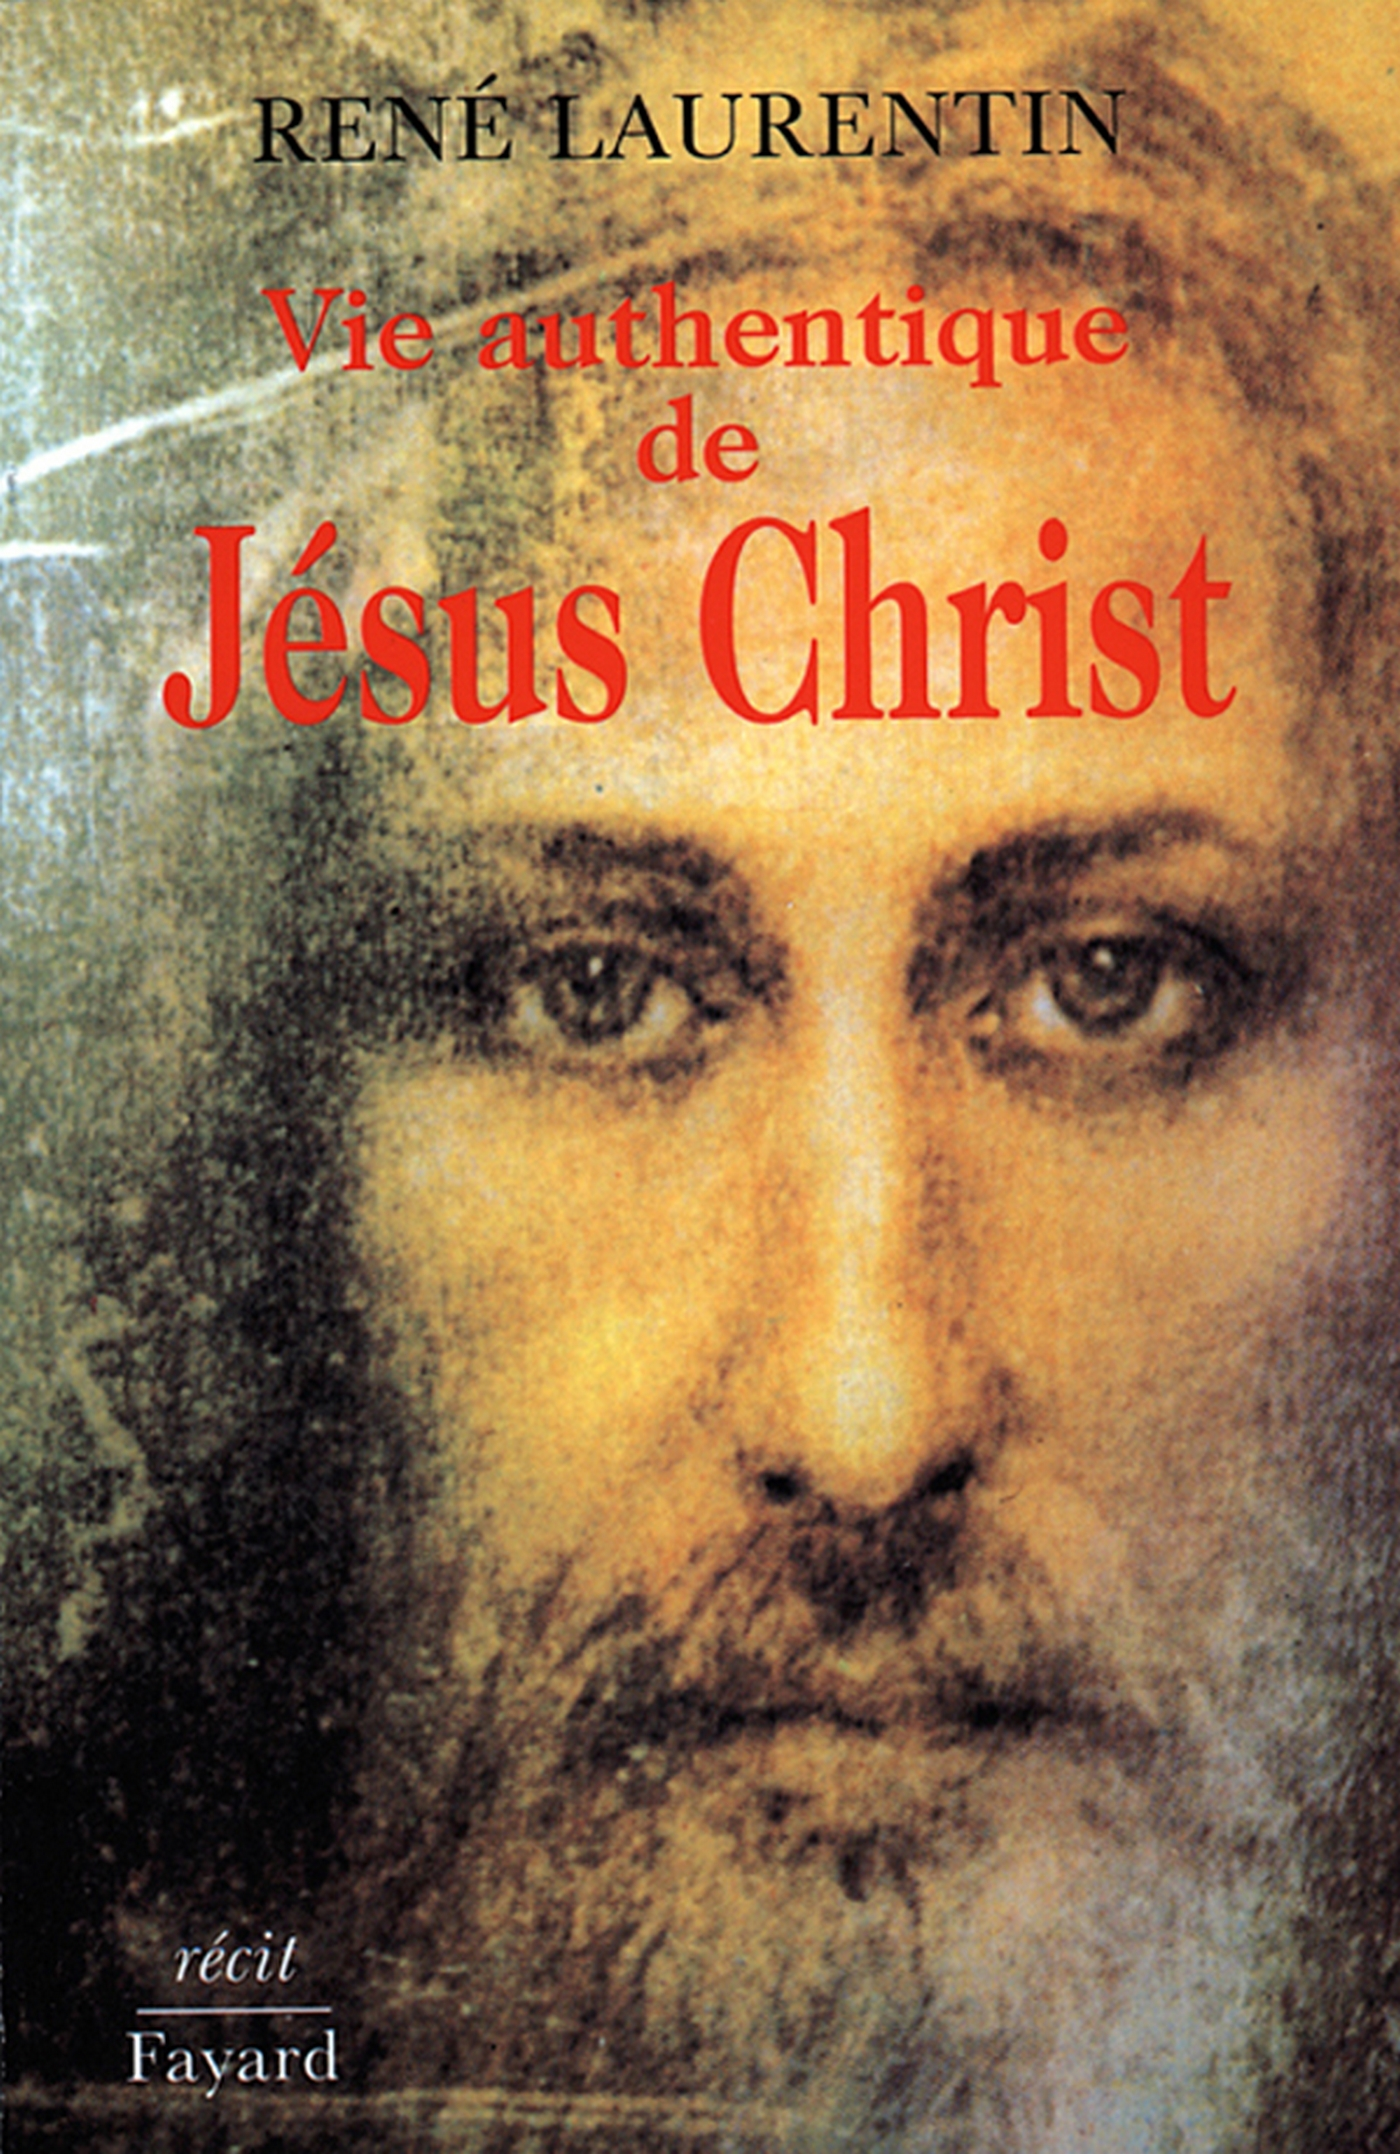 Vie authentique de Jésus Christ